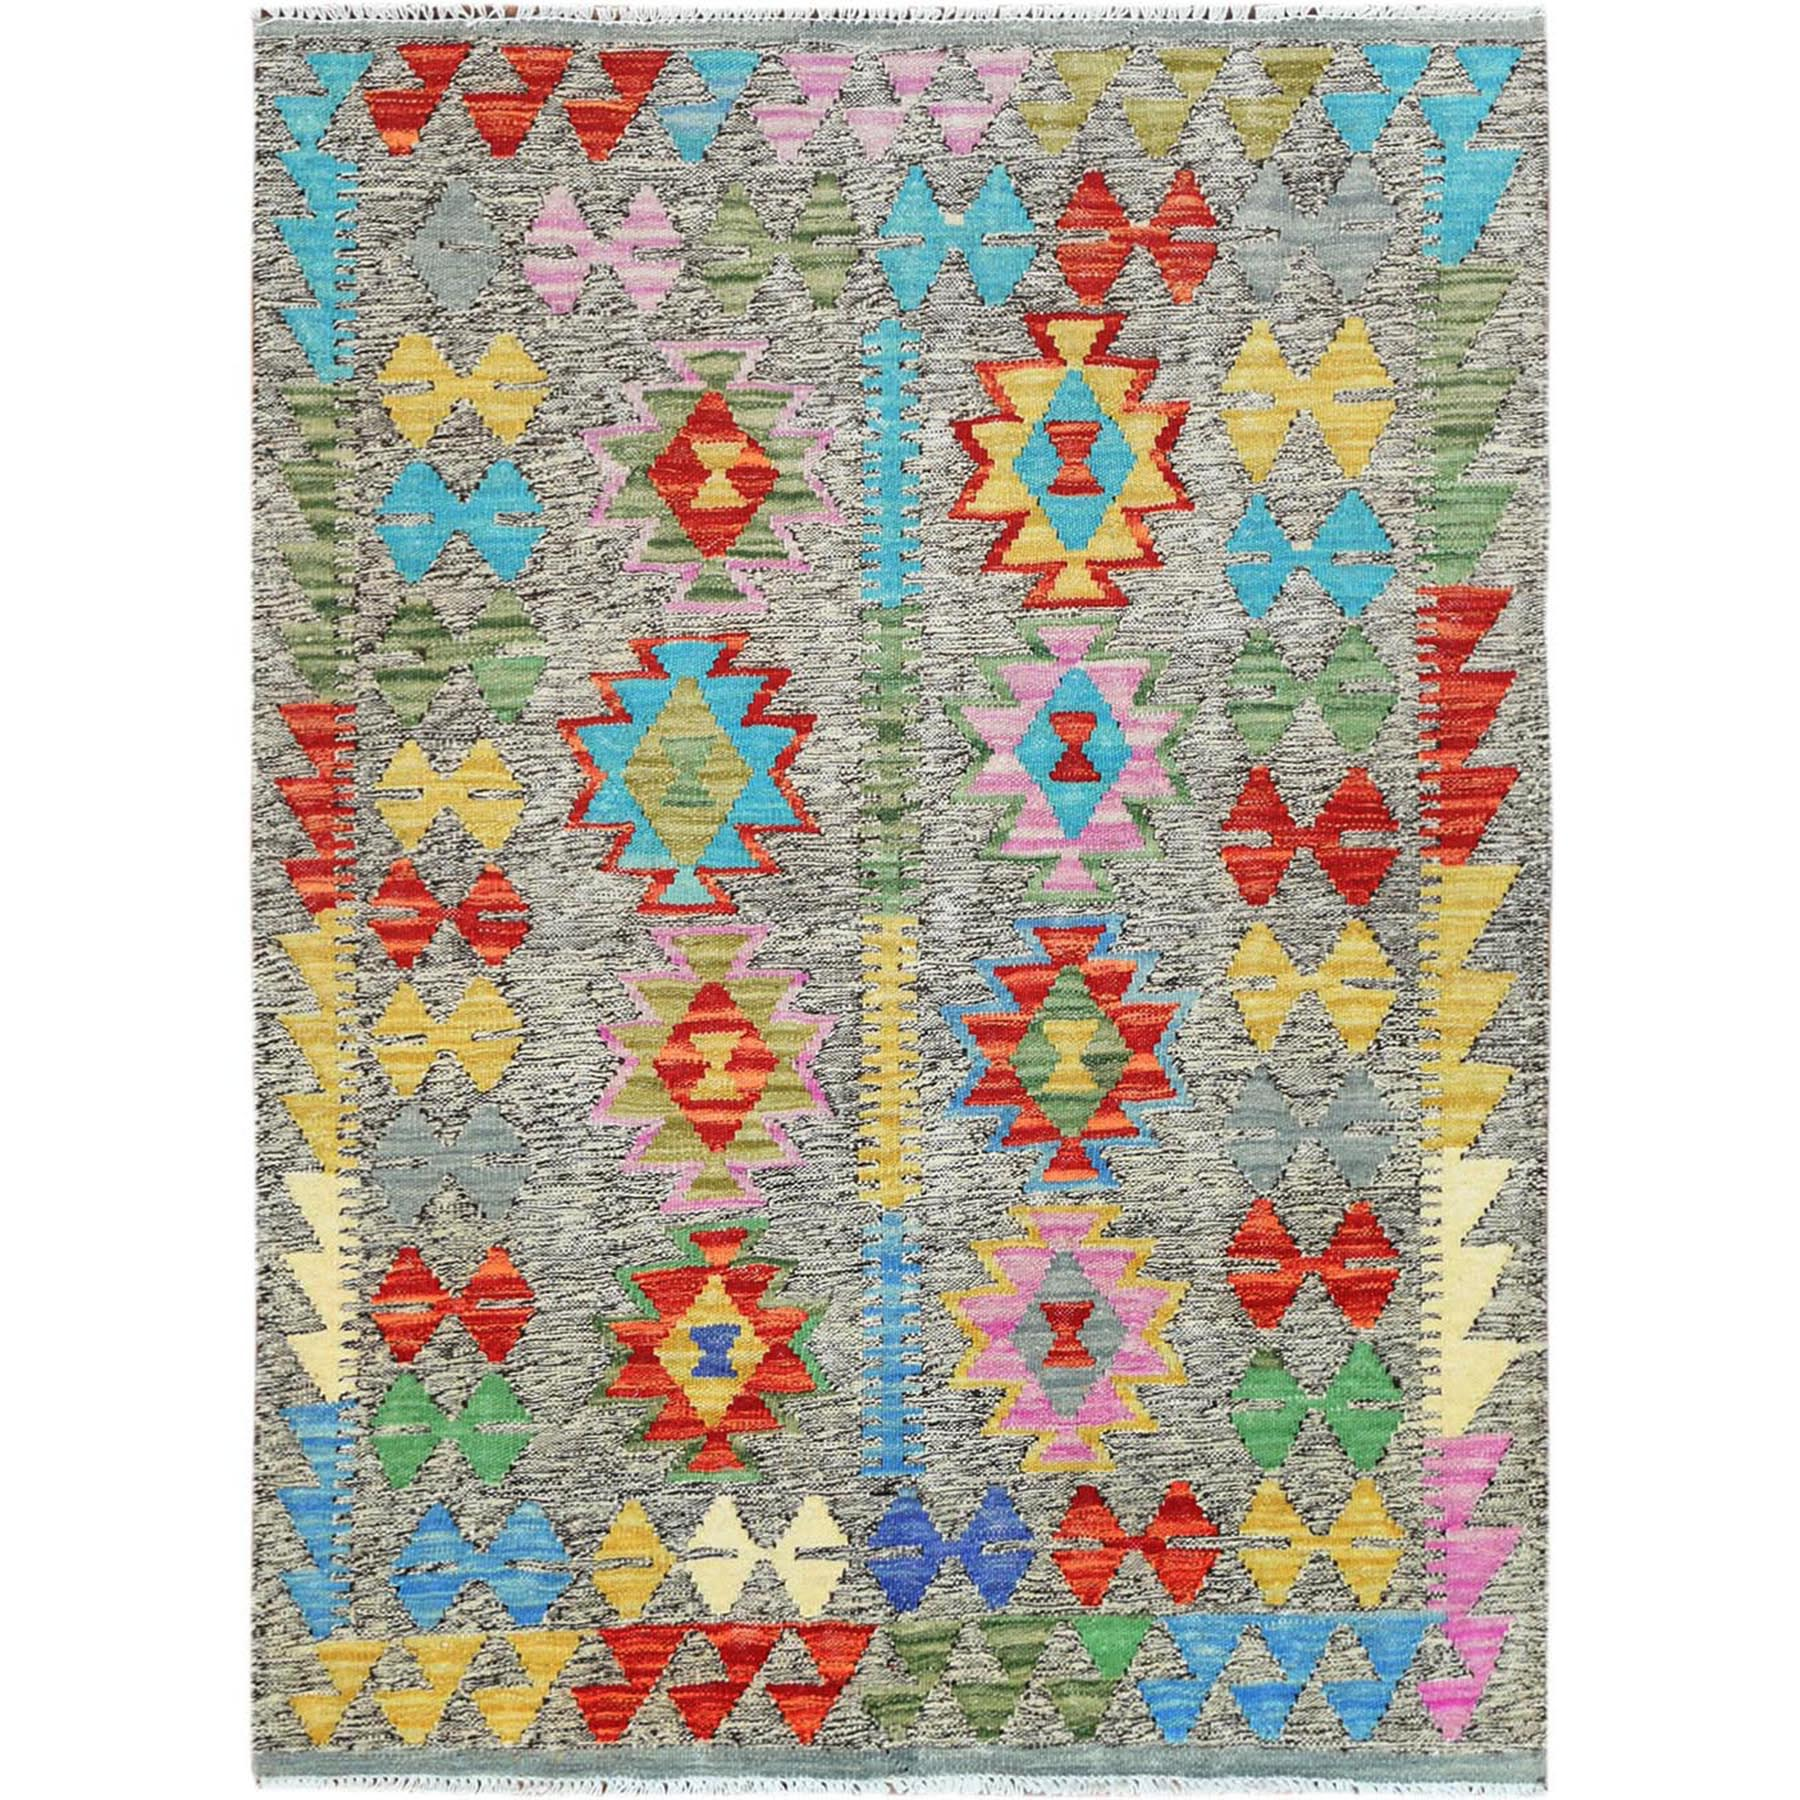 "3'4""x4'8"" Colorful Geometric Design Pure Wool Reversible Flat Weave Afghan Kilim Hand Woven Oriental Rug"